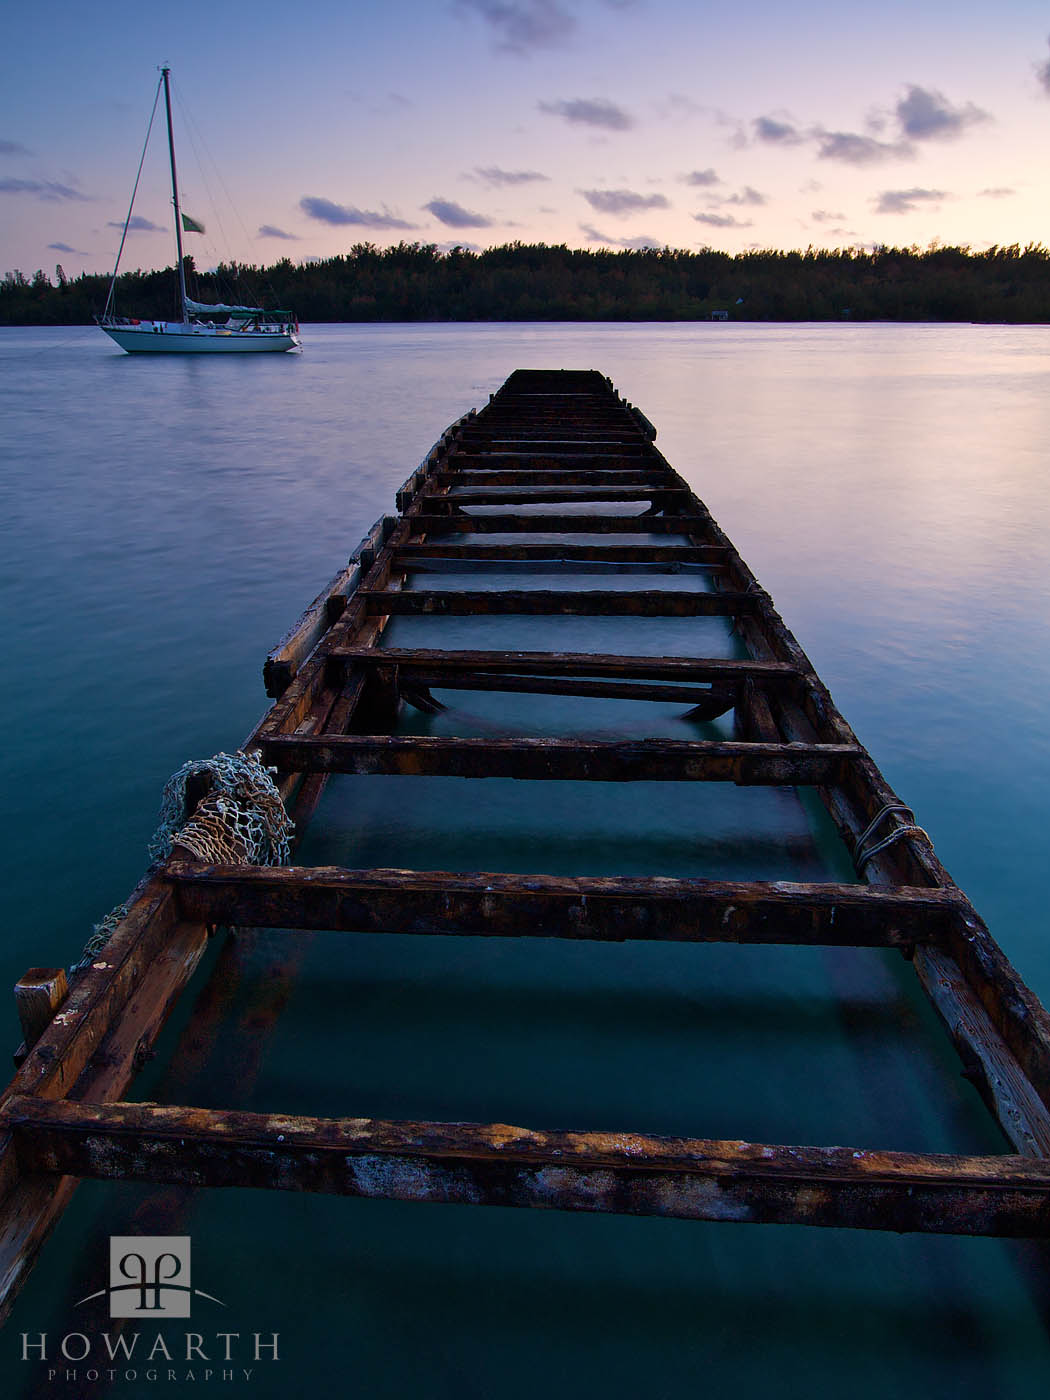 Twighlight, dock, sailboat, rusty, photo